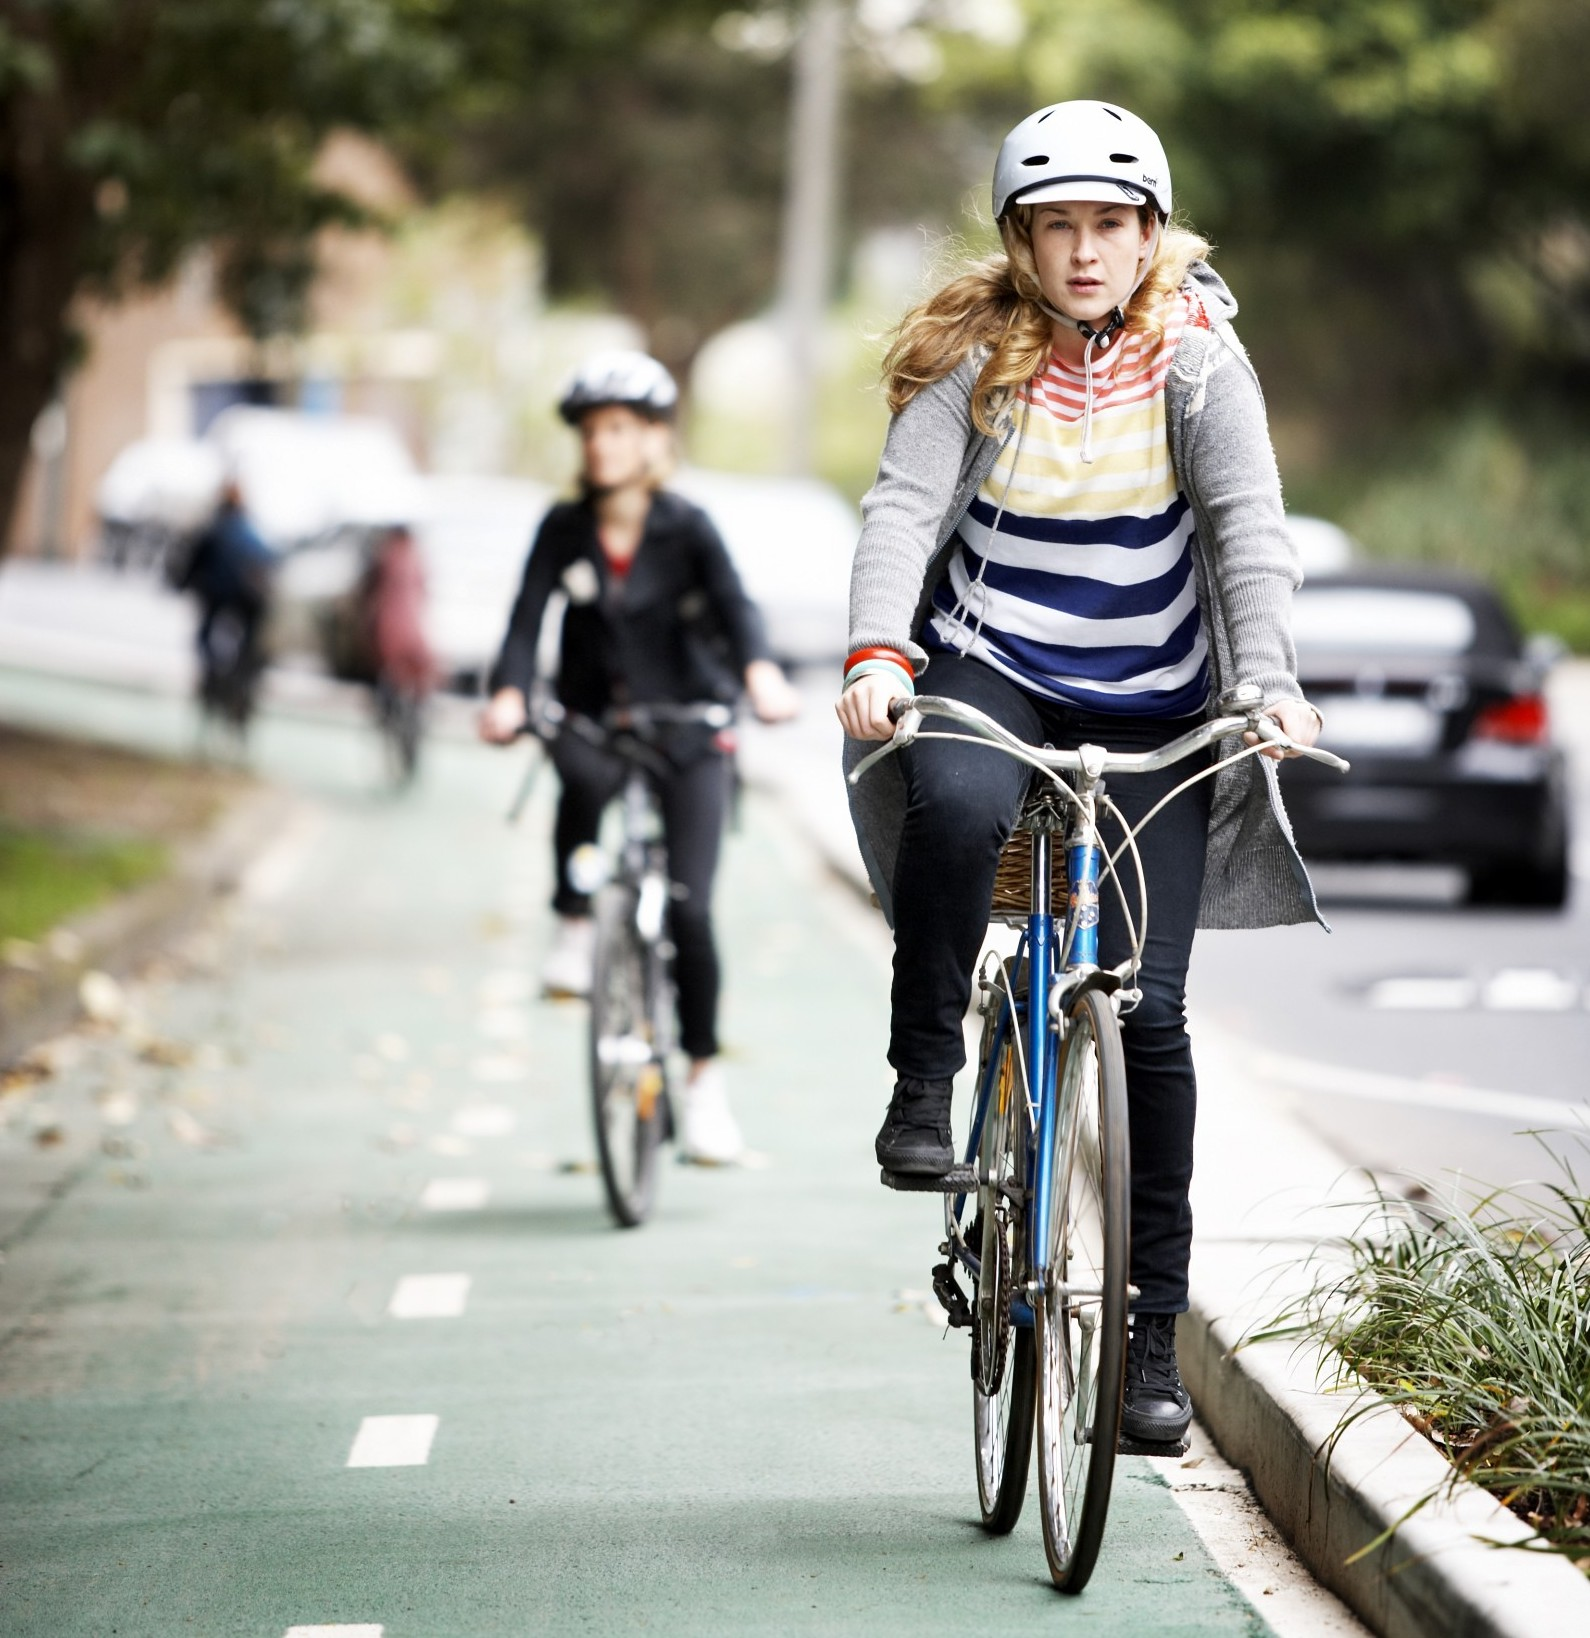 Cycling in the City: Women Only Course